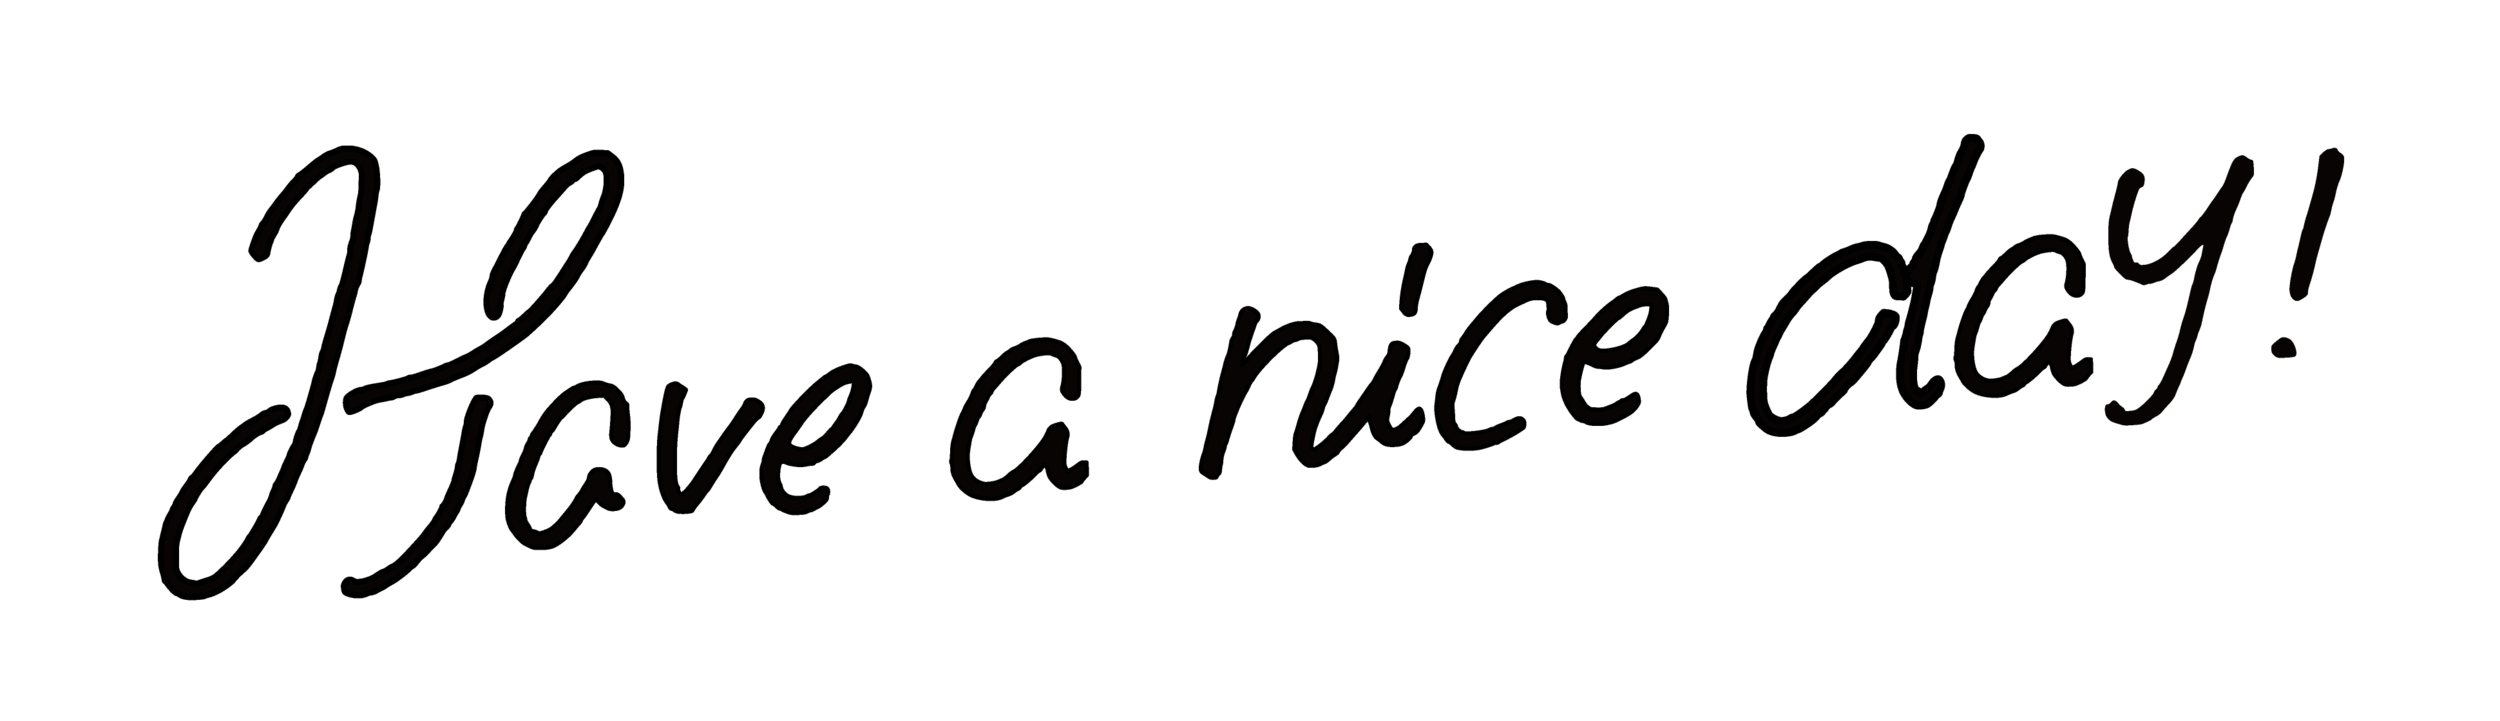 have-a-nice-day-png--3881.png